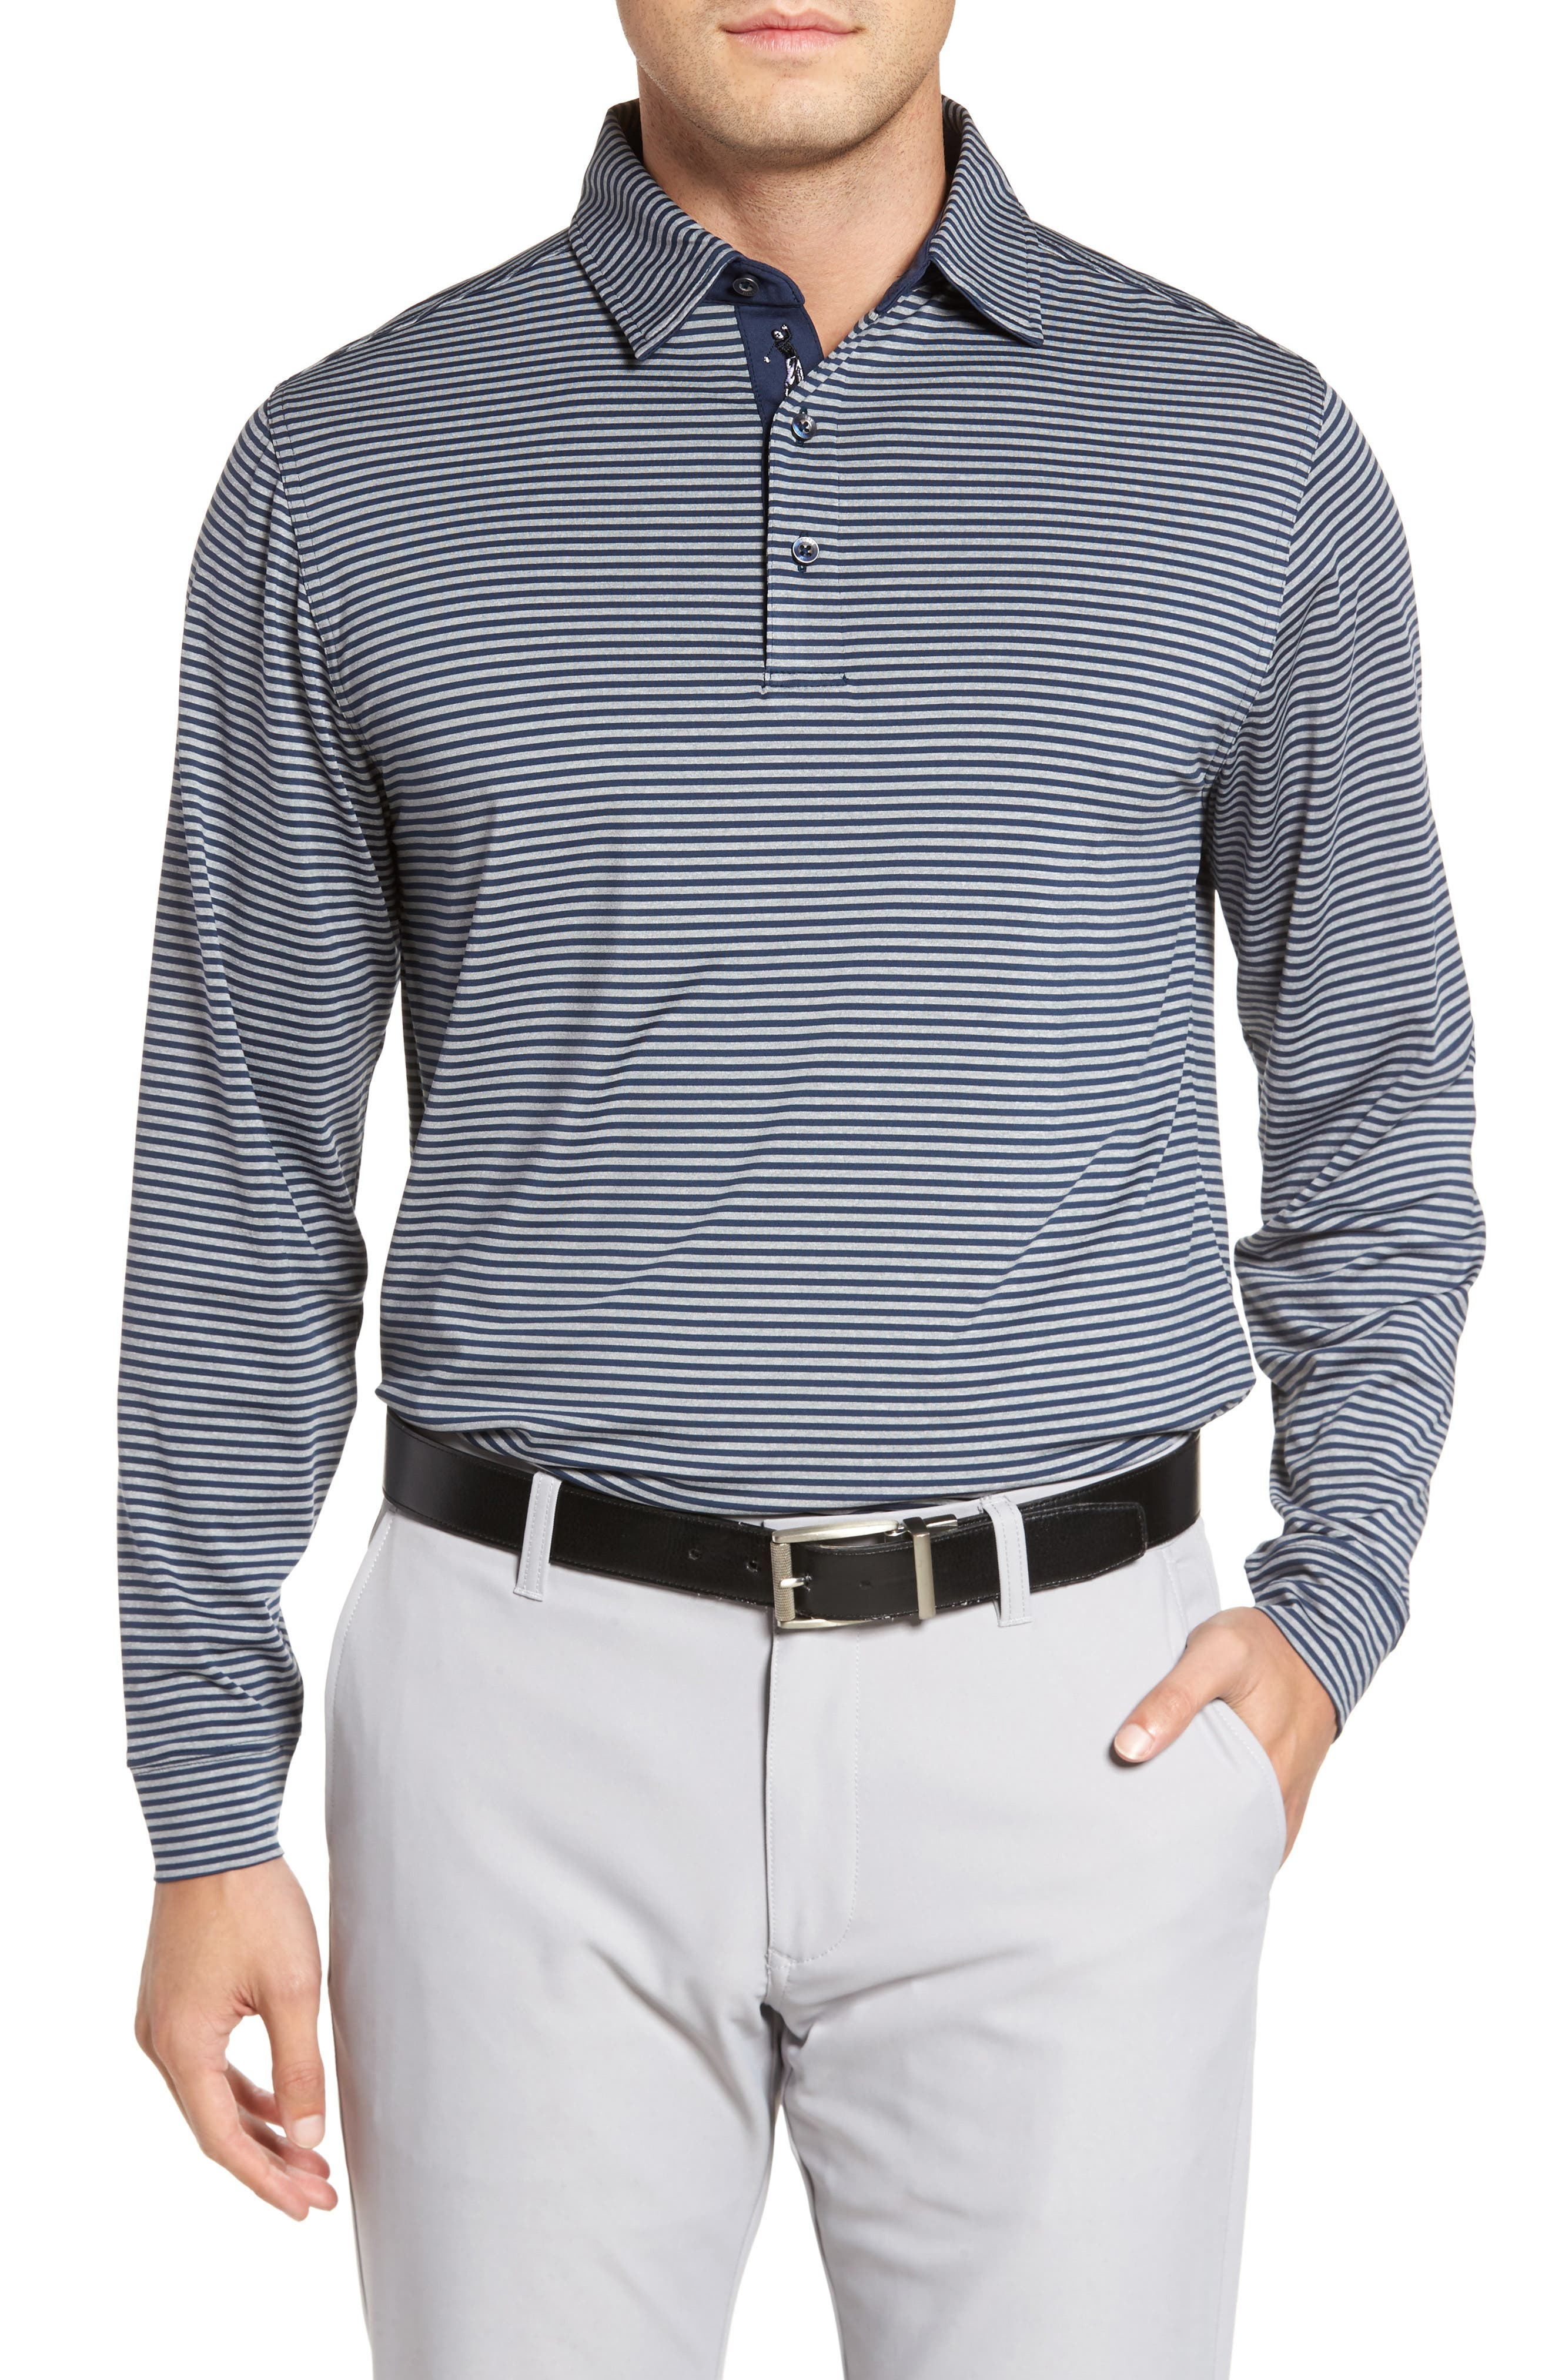 Bobby Jones XH20 Ranger Stripe Polo